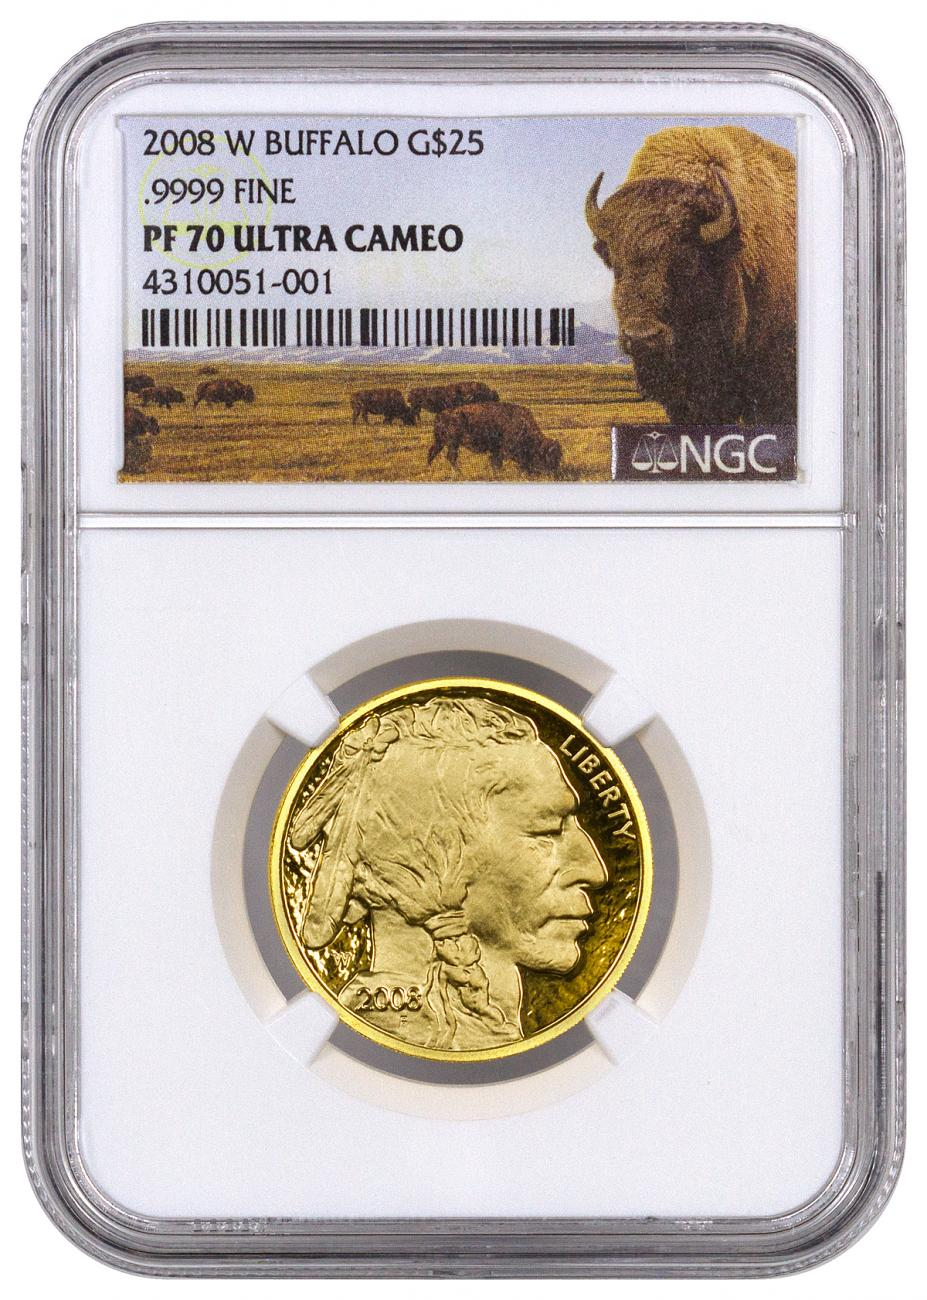 2008-W 1/2 oz Gold Buffalo Proof $25 NGC PF70 UC Buffalo Label